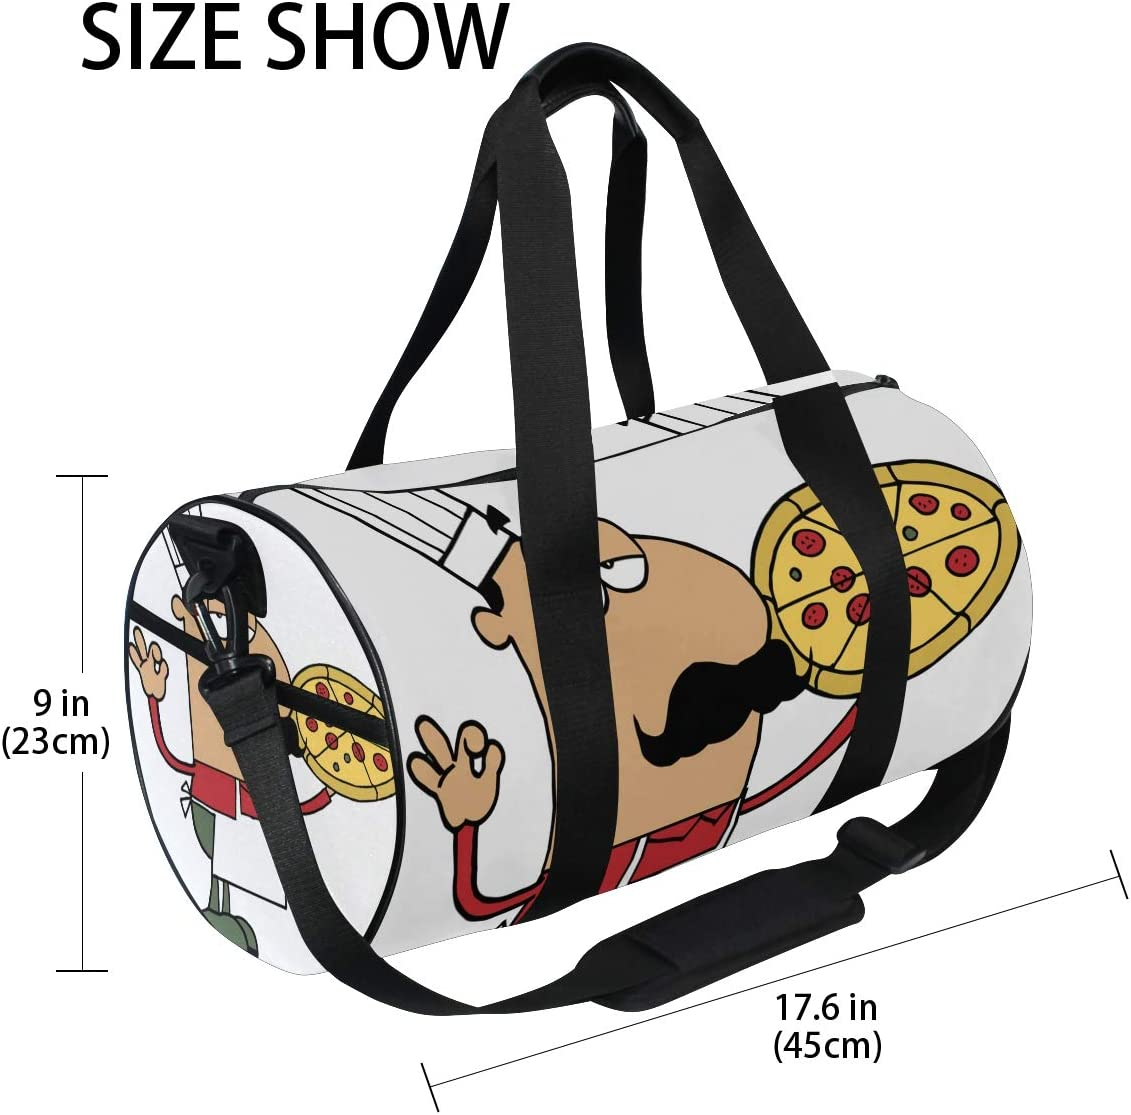 Duffel Bag Whole Pepperoni Pizza Women Garment Gym Tote Bag Best Sports Bag for Boys